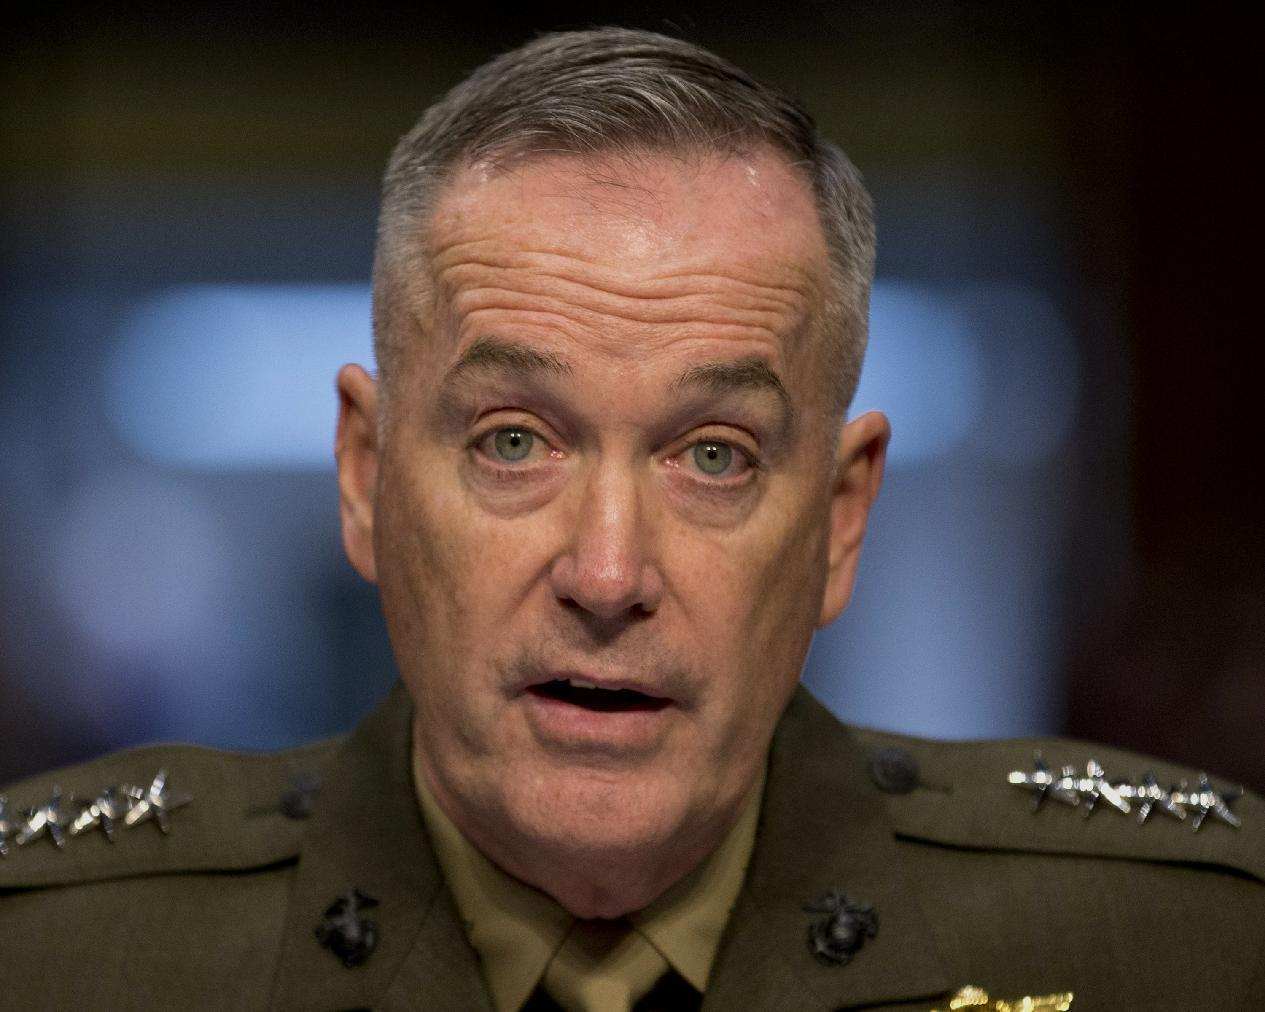 Obama chooses Marine general as Joint Chiefs chairman